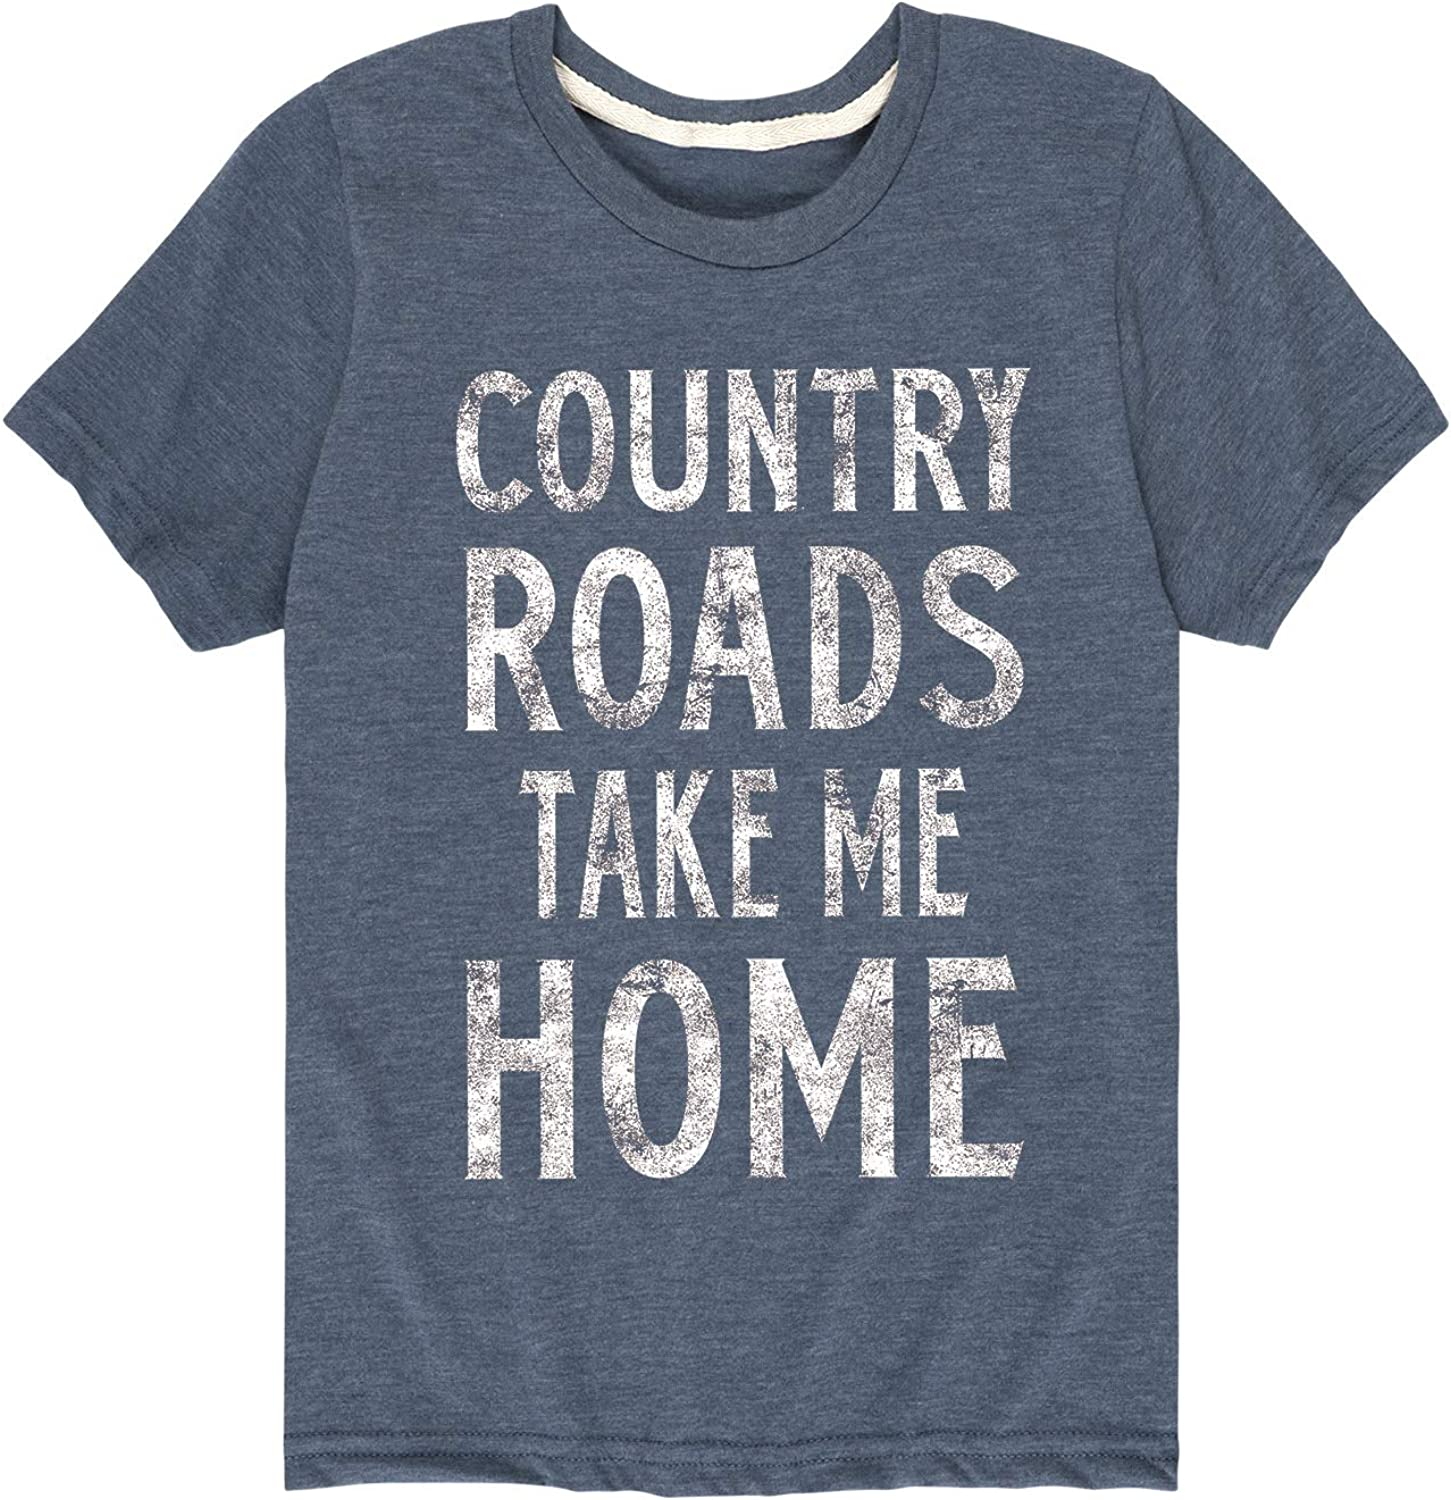 Country Roads Take Me Home - Youth Short Sleeve Graphic T-Shirt